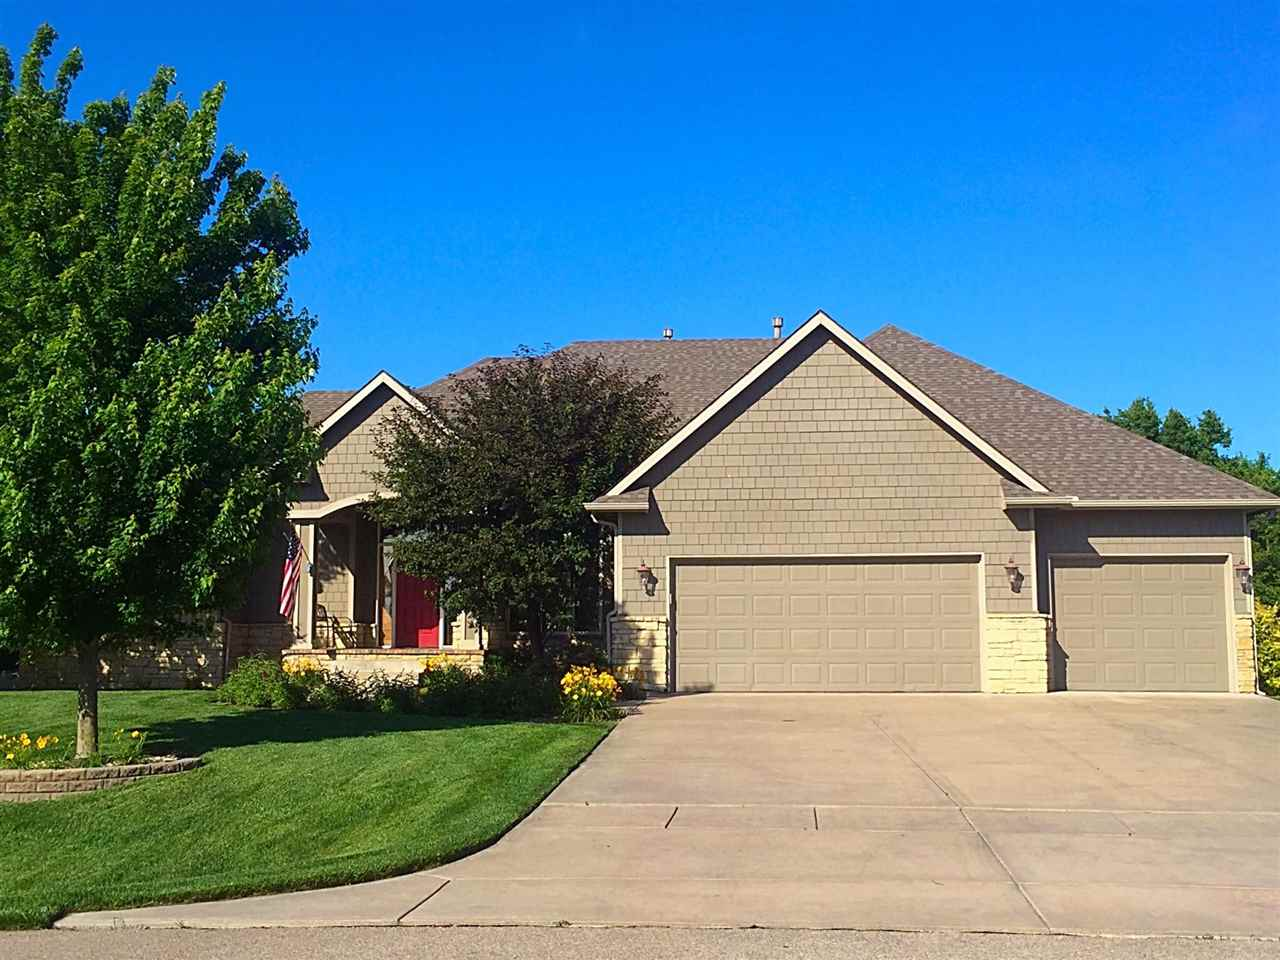 3206 N Willow Creek, Rose Hill, KS 67133